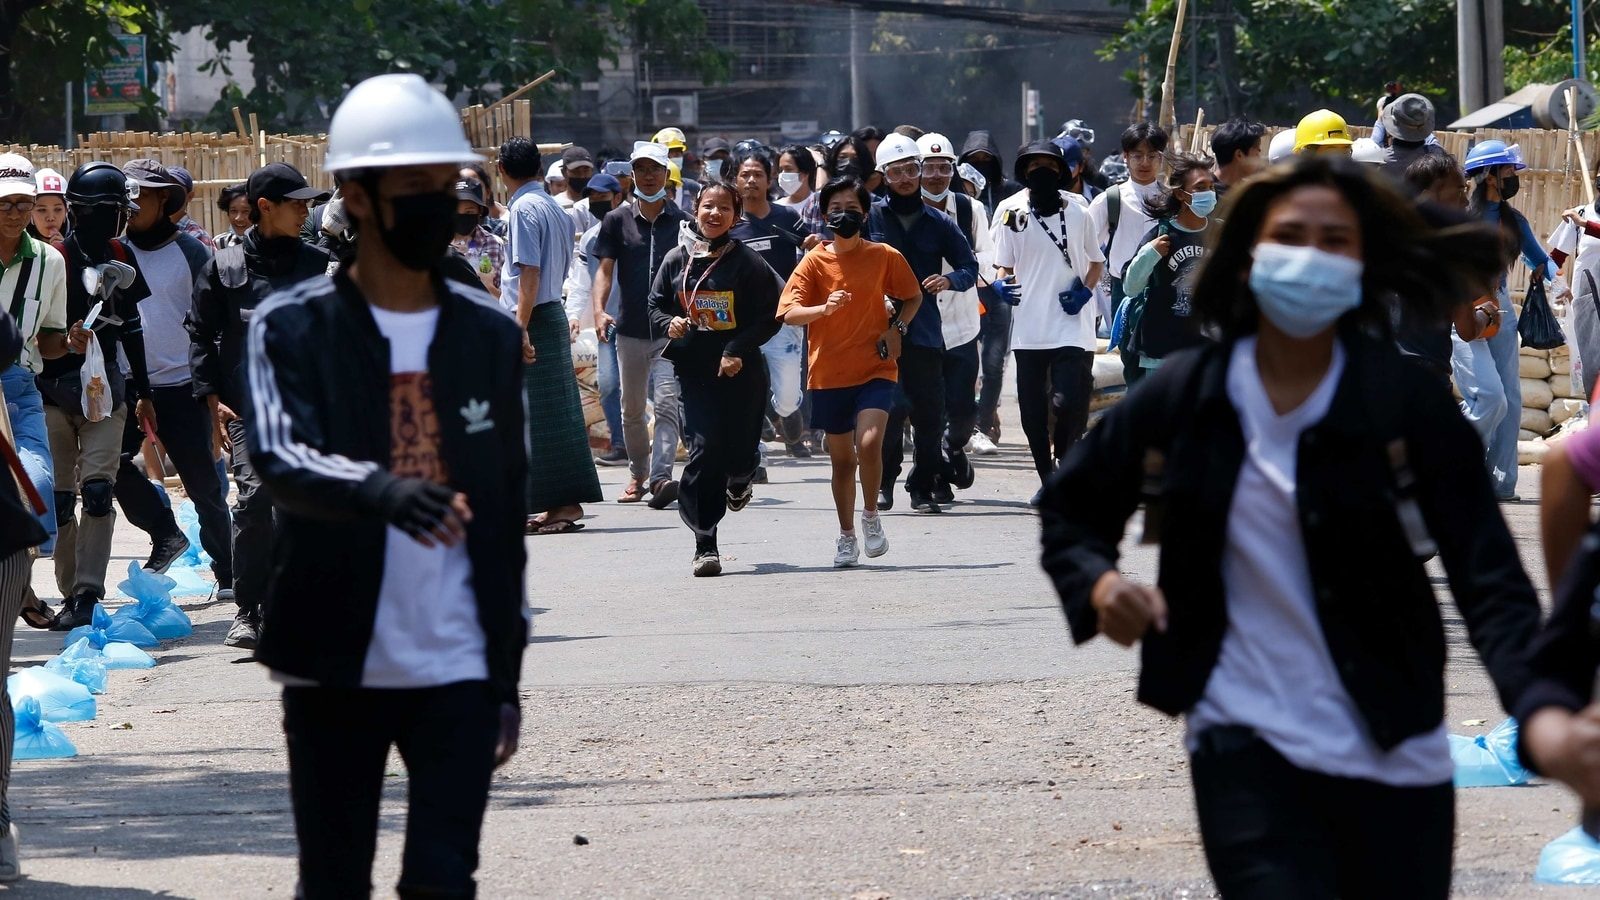 Myanmar security forces kill 9 protesters as Indonesia calls for end to violence